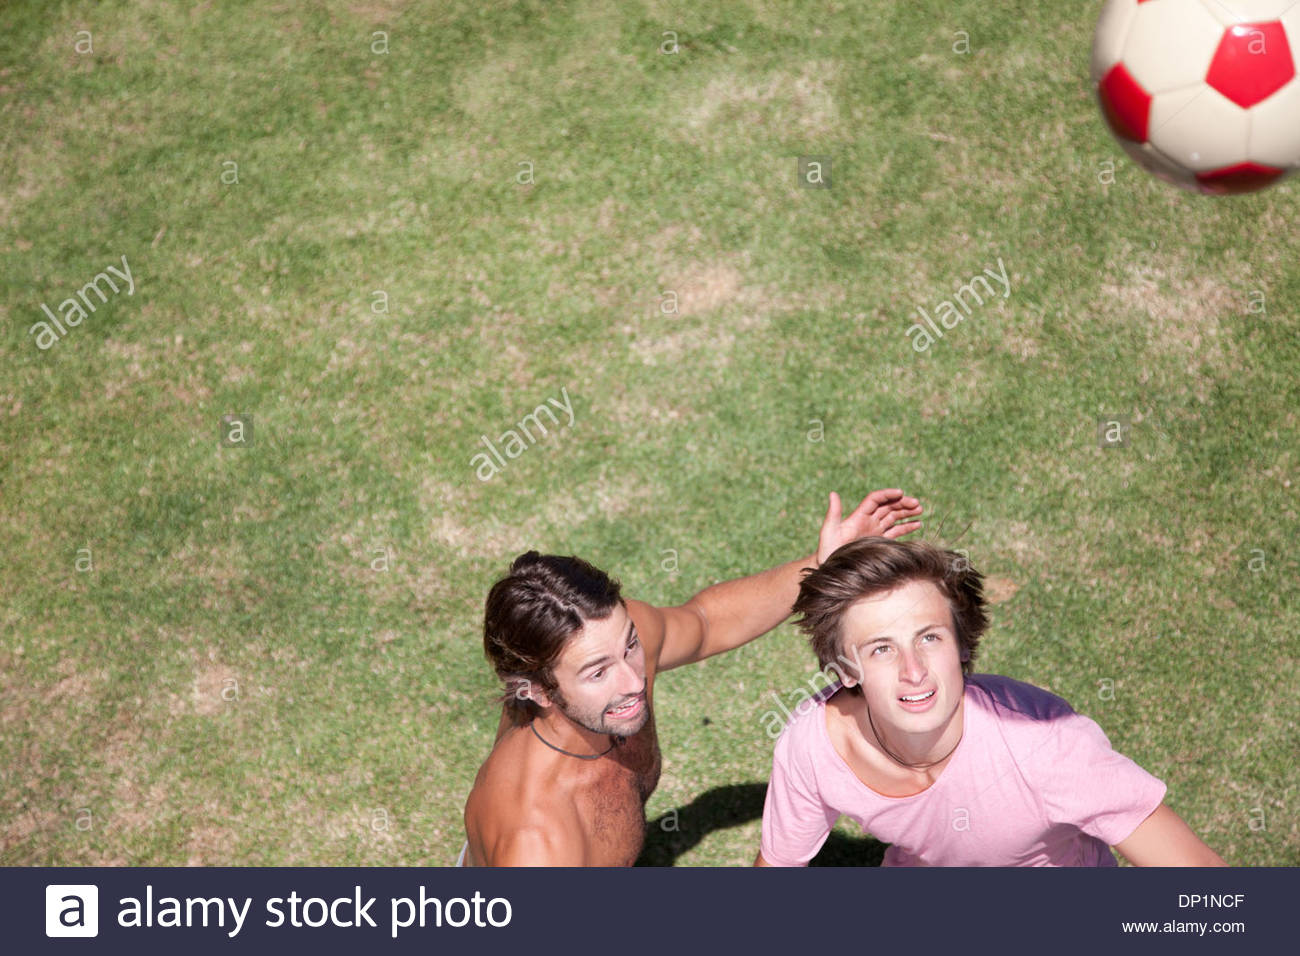 Men playing soccer on grass - Stock Image